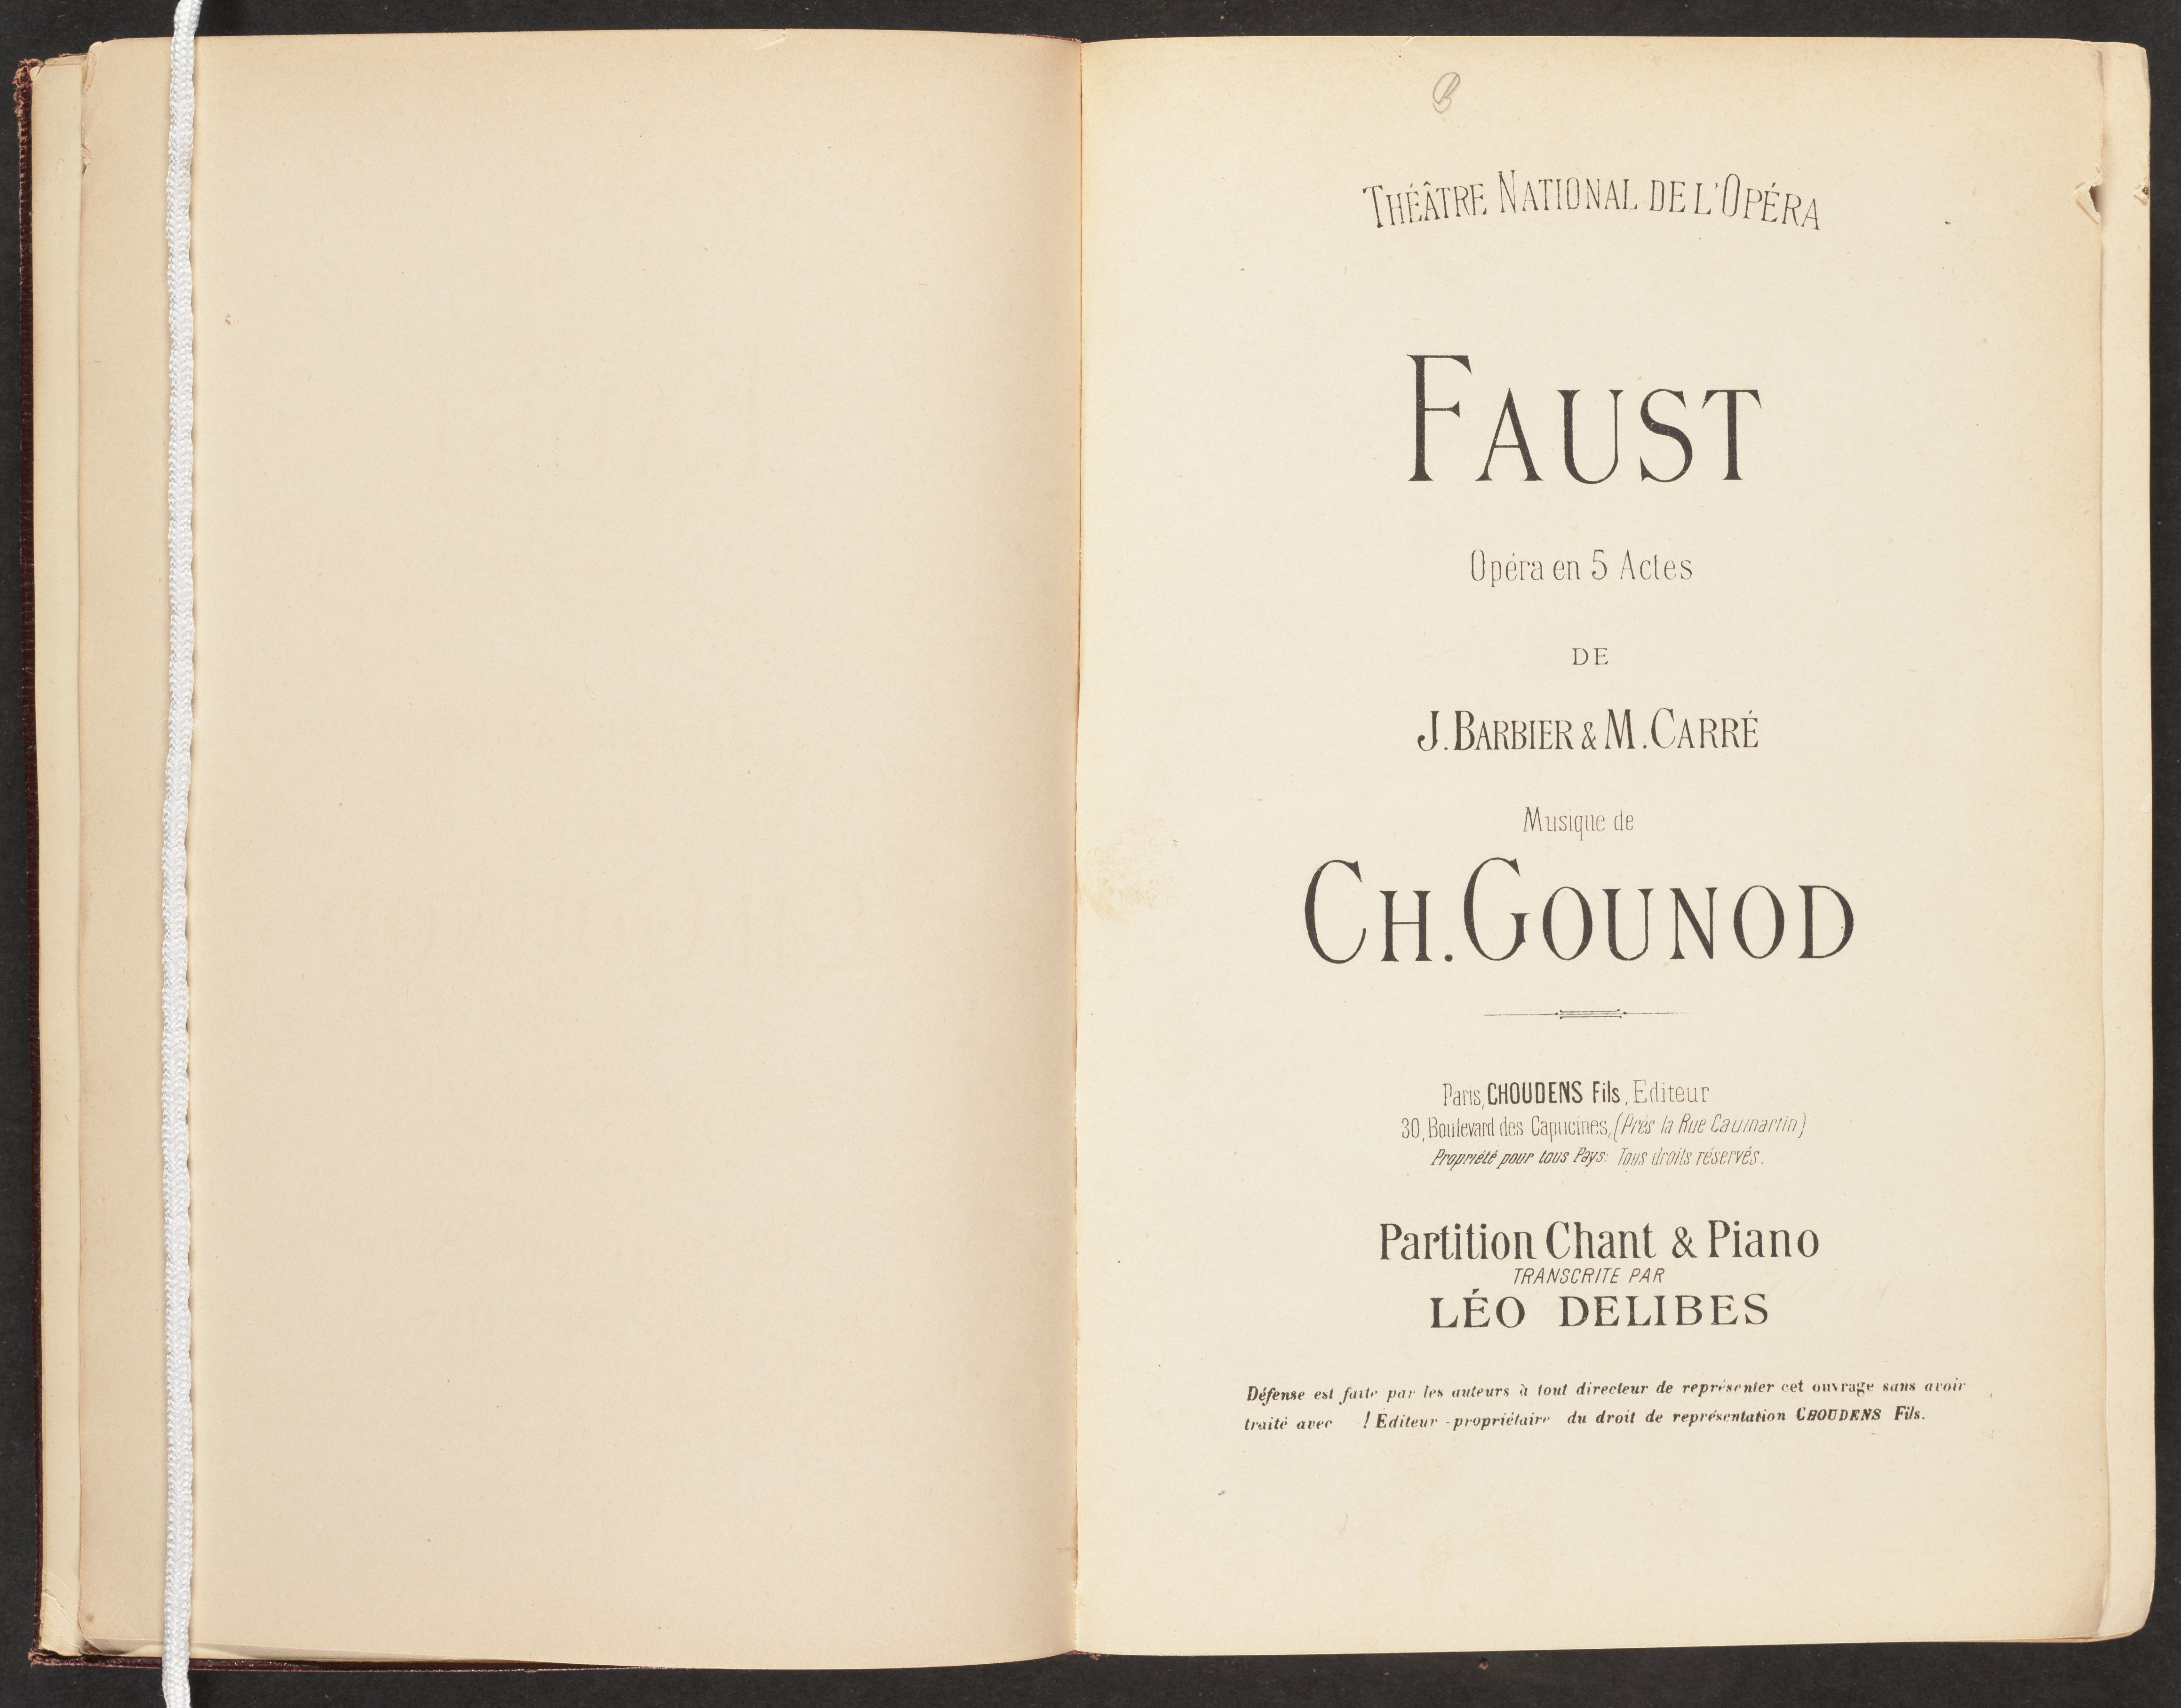 Title page. Gounod, Charles, 1818-1893. Faust : opéra en 5 actes / de J. Barbier et M. Carré ; musique de Ch. Gounod ; partition chant et piano arrangée par Léo Delibes. Paris : Choudens, [186-?]  M1503 G711 F42 C4 1860z Marvin Duchow Music - Rare Books